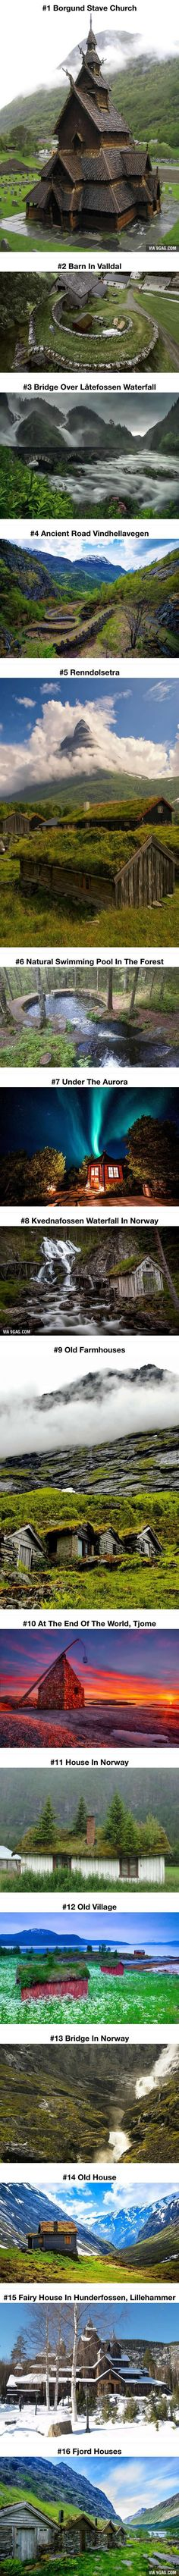 Beautiful Fairy Tale Architecture From Norway. These places seem so cool to go to Oh The Places You'll Go, Cool Places To Visit, Places Around The World, Beautiful Architecture, Architecture Board, Architecture Memes, Bridges Architecture, Historical Architecture, Travel Destinations